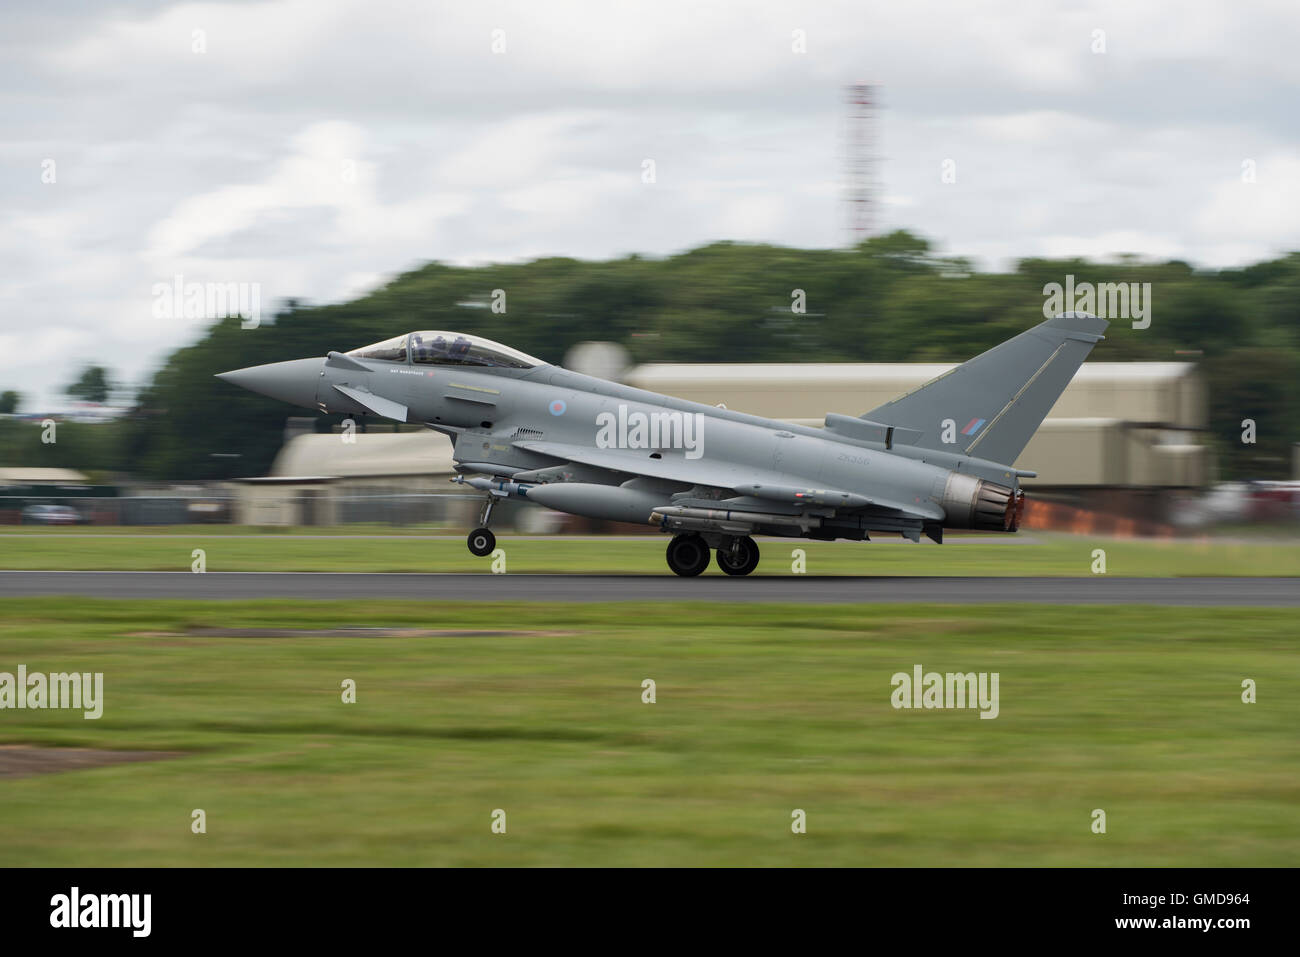 BAE Systems Eurofighter Typhoon FGR4 takes off to to display at the 2016 Royal International Air Tattoo. - Stock Image